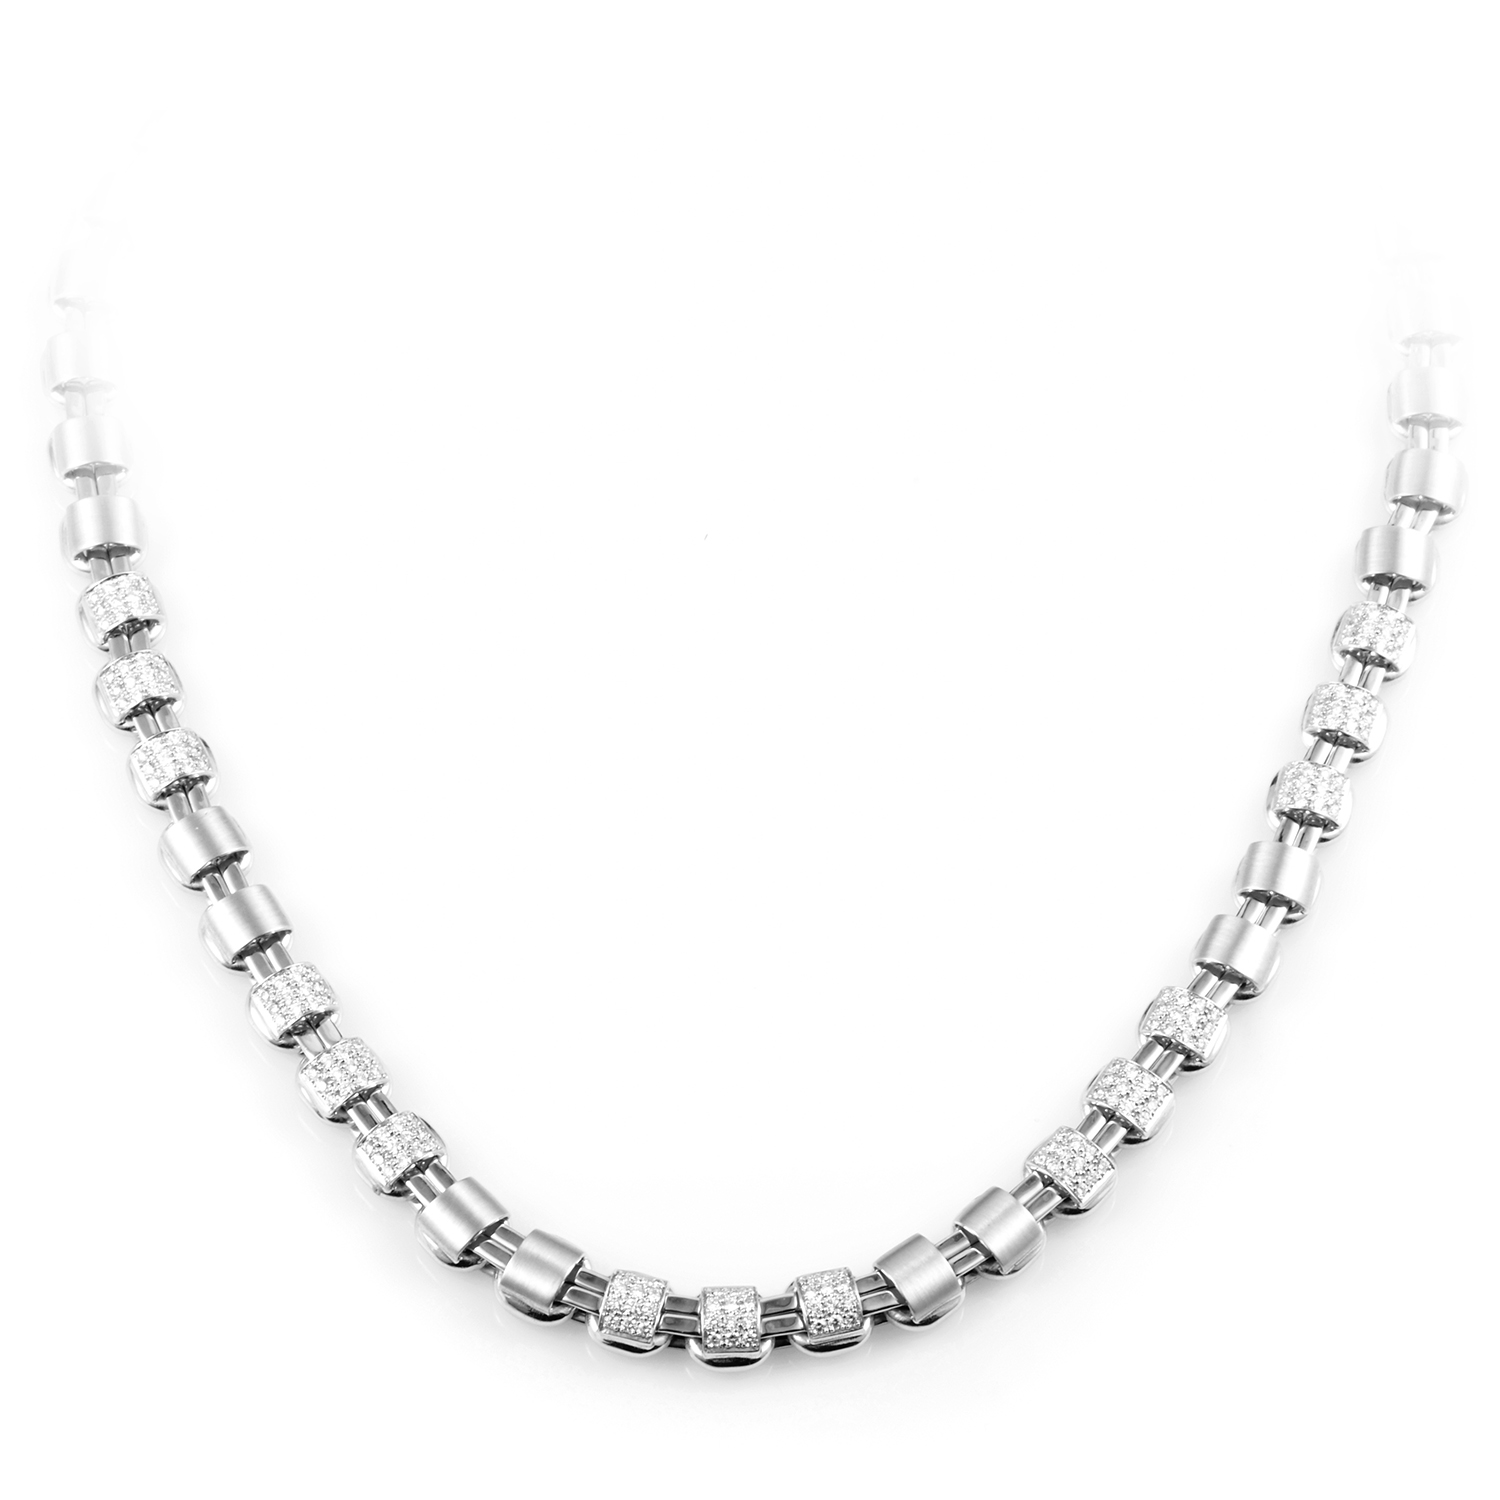 Women's 18K White Gold Diamond Choker Necklace